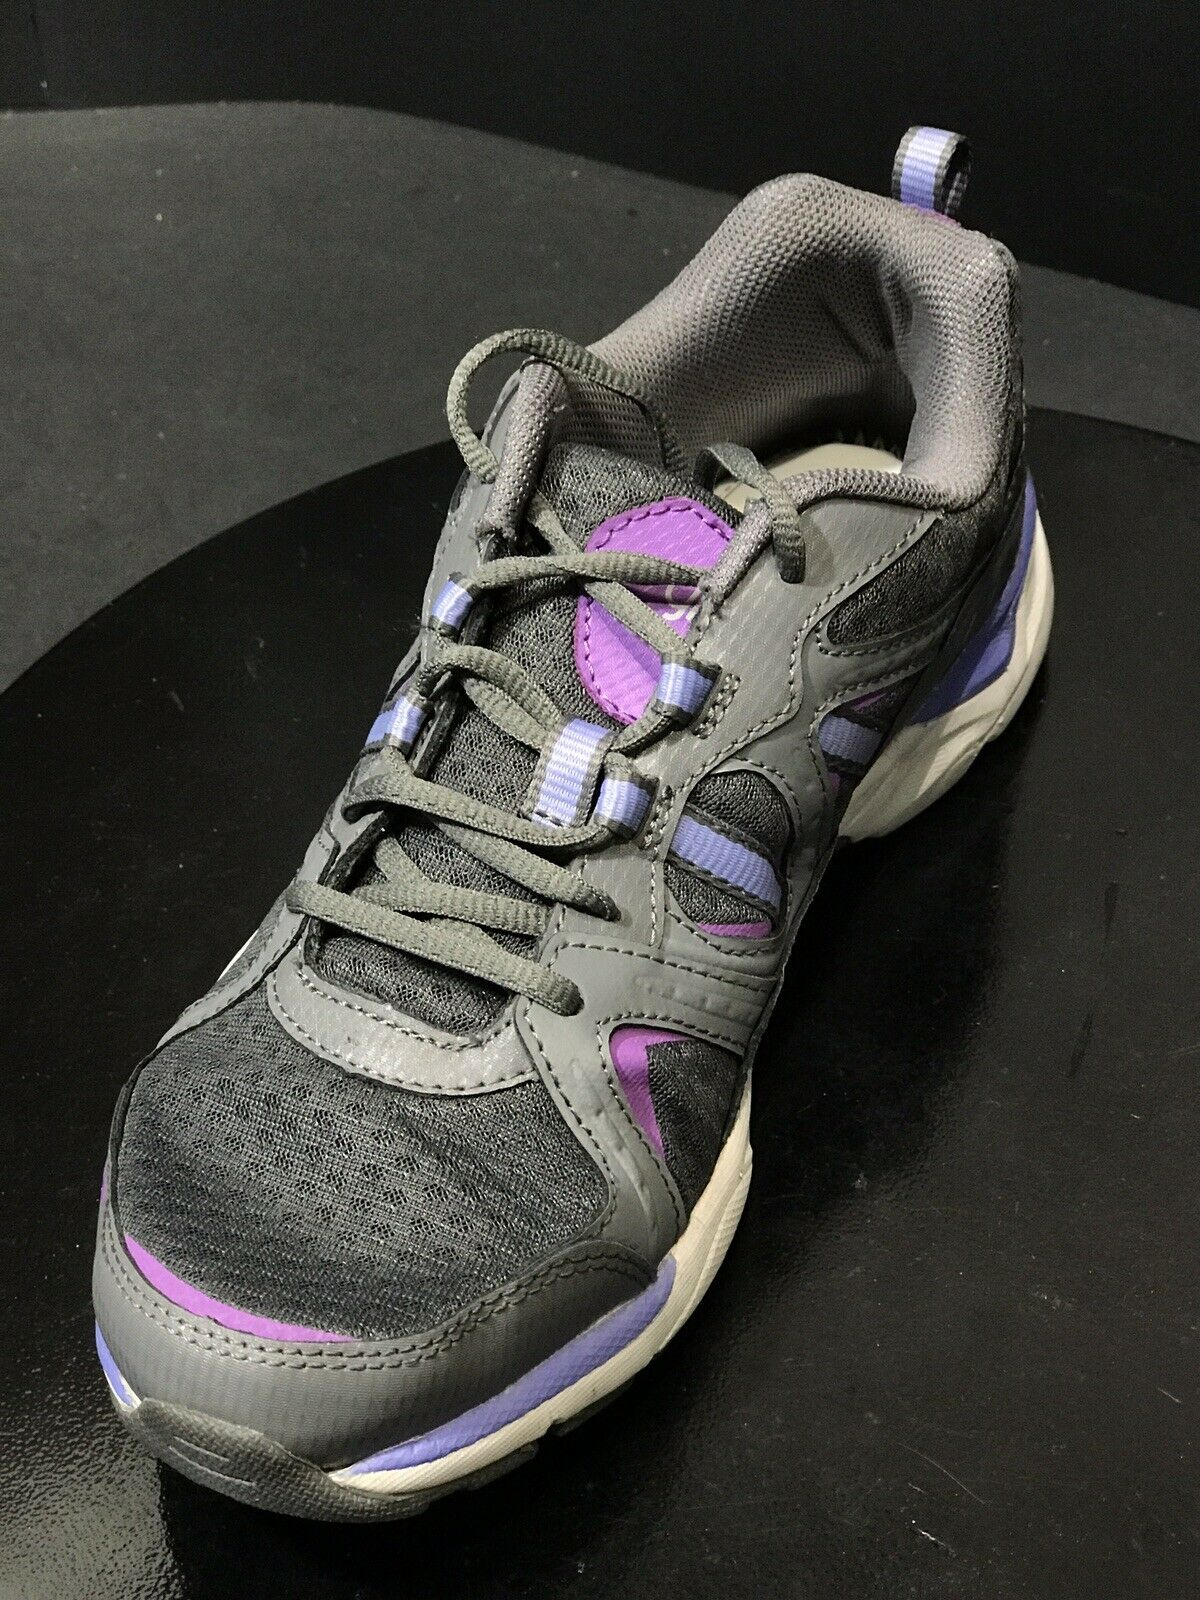 Ryka Revenant Sneakers Women's Walking shoes Grey color Size US 9 M